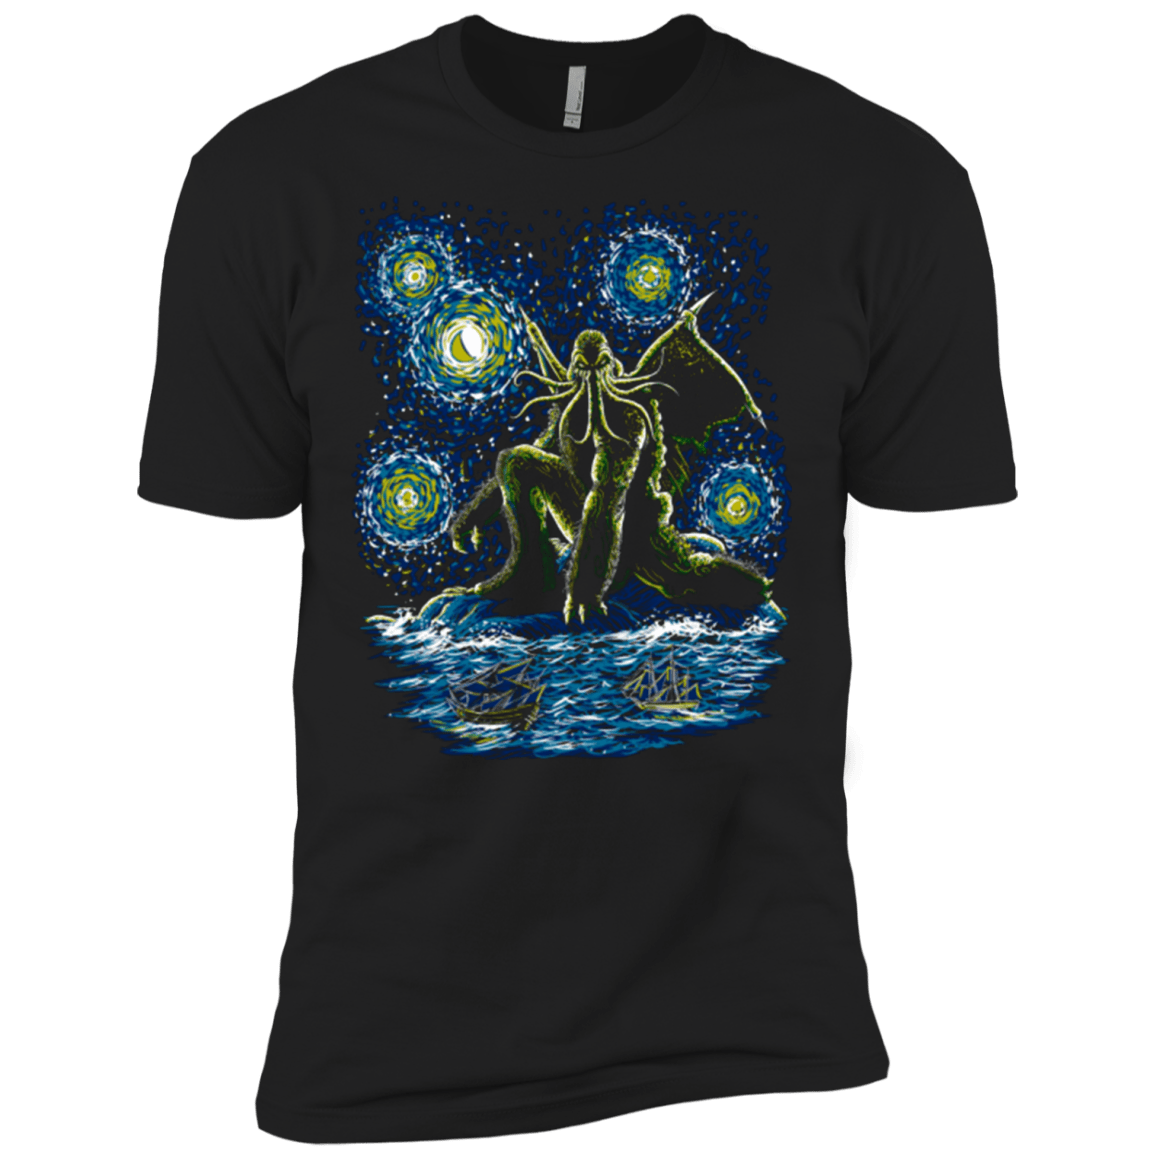 T-Shirts Black / X-Small Night of Cthulhu Men's Premium T-Shirt